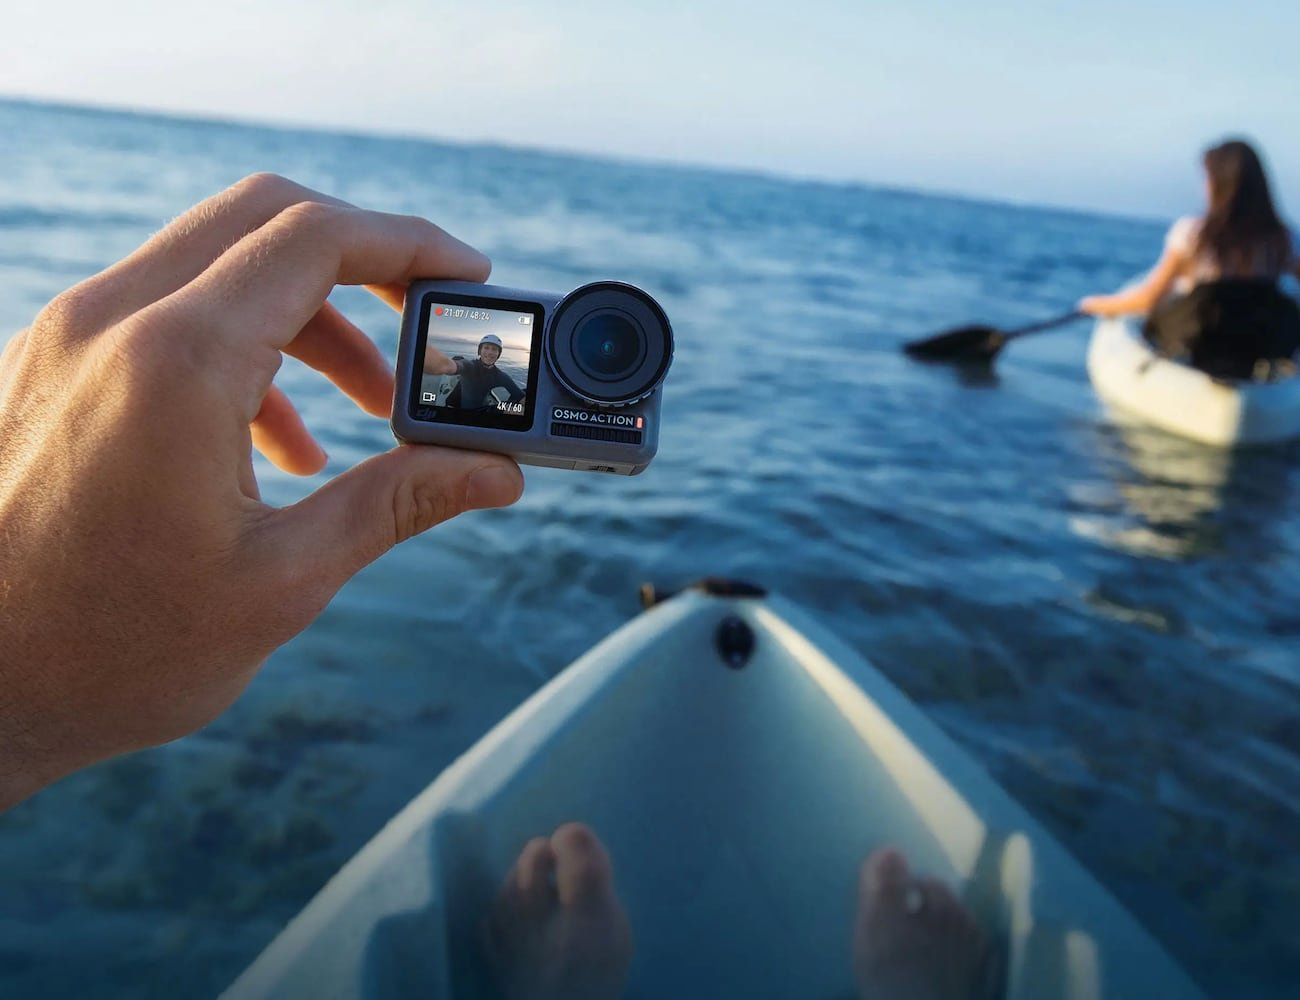 DJI Osmo Action Dual Screen Video Camera lets you see the shot from either side